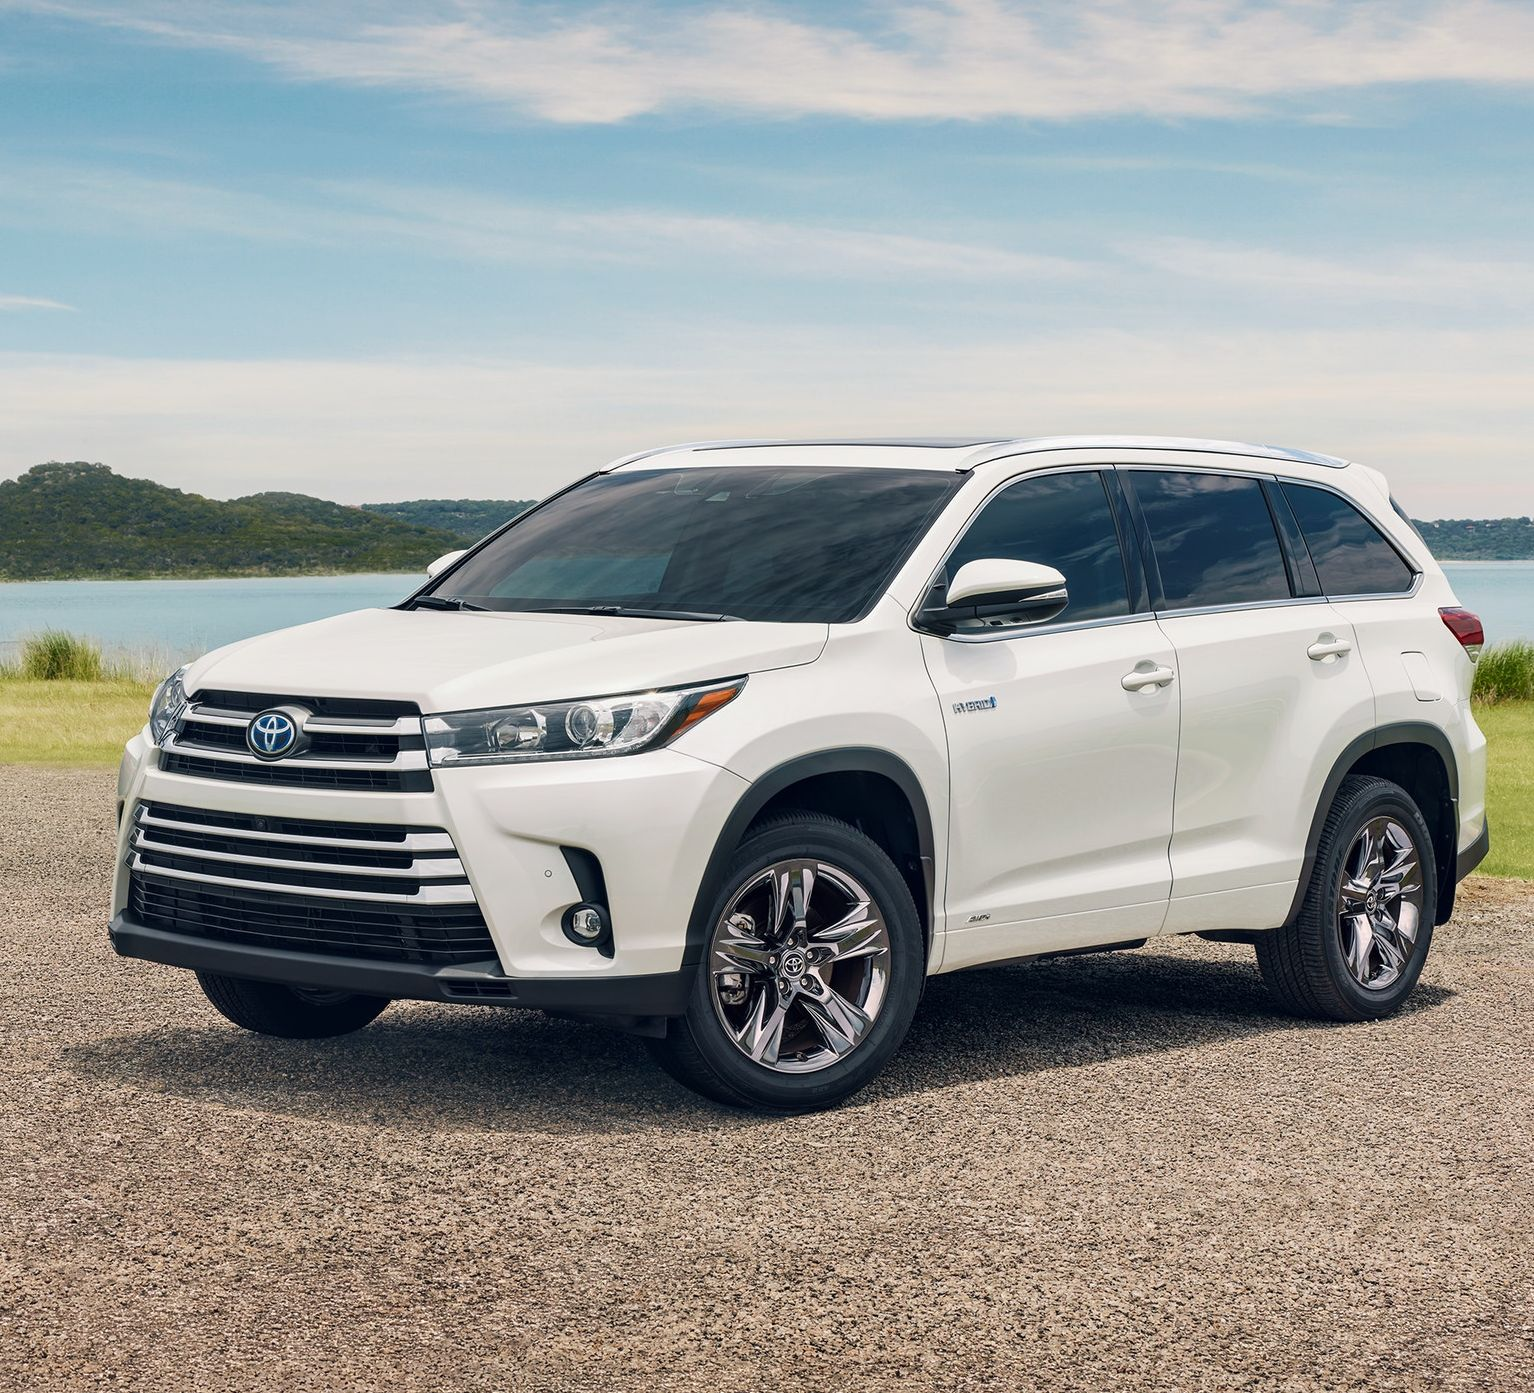 2019 Toyota Highlander Leasing near San Jose, CA